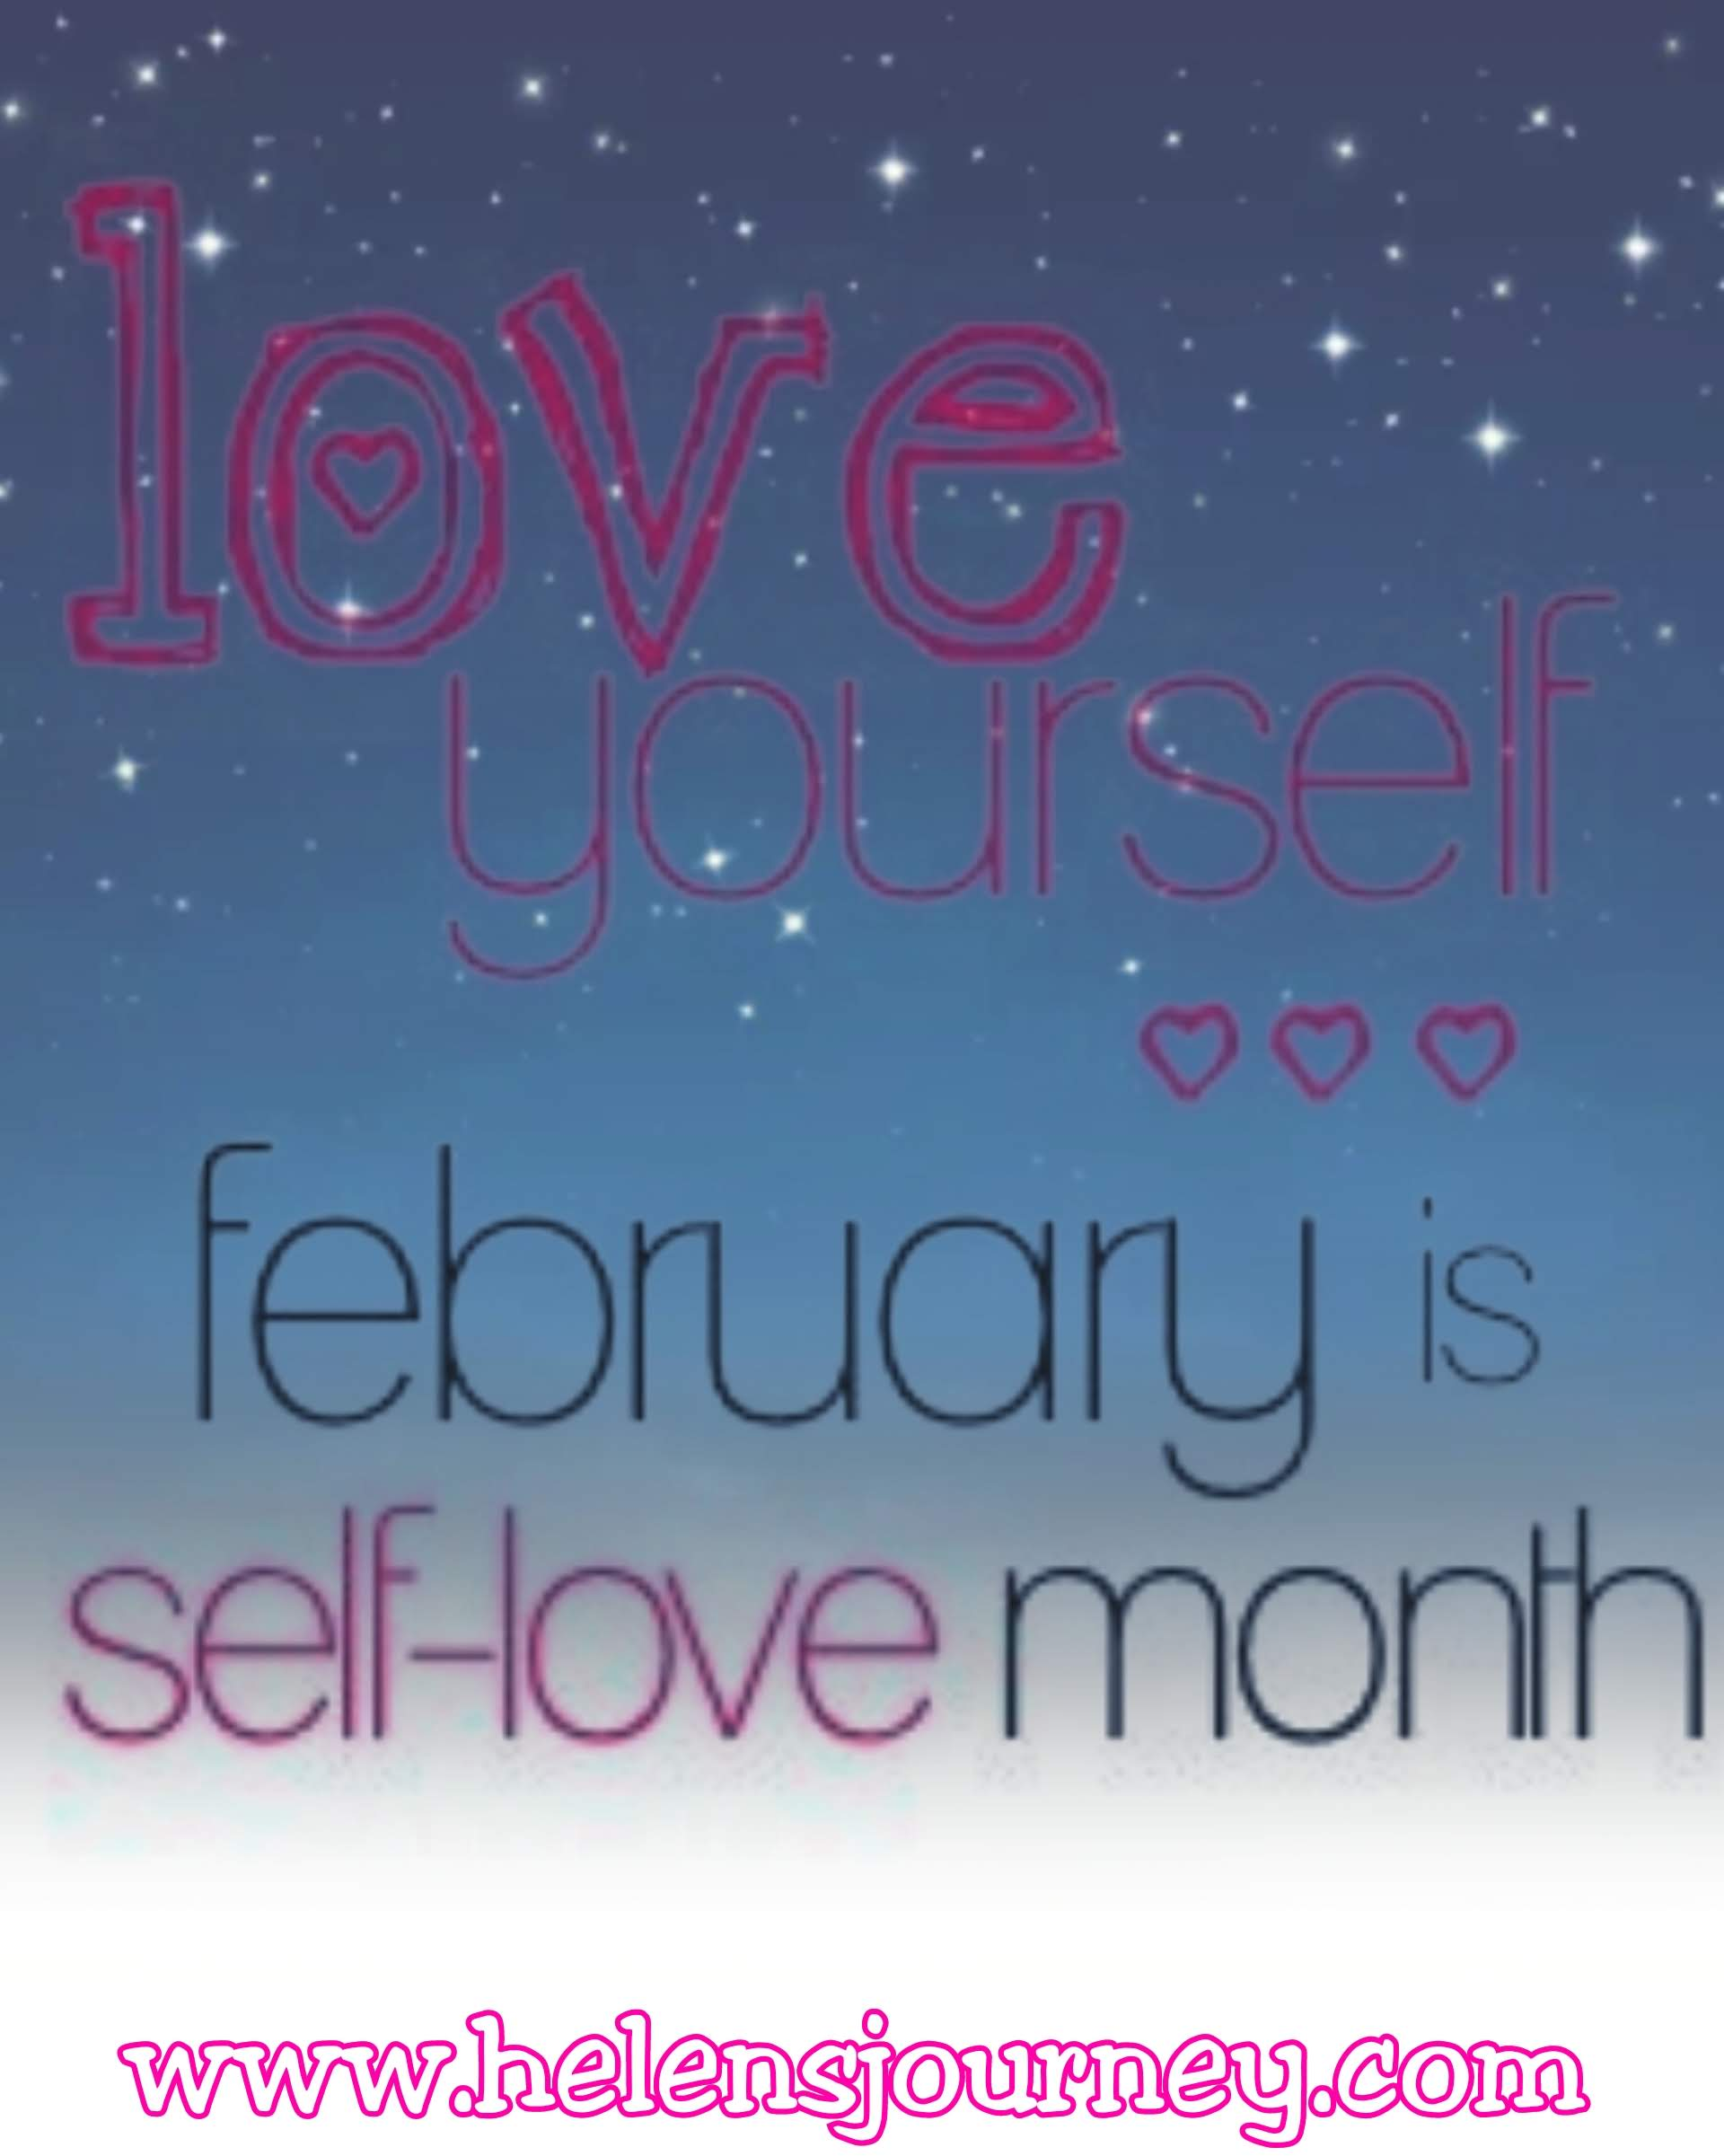 A dose of self love for singles on valentines day by making February a month of self love by Helen's Journey Blog